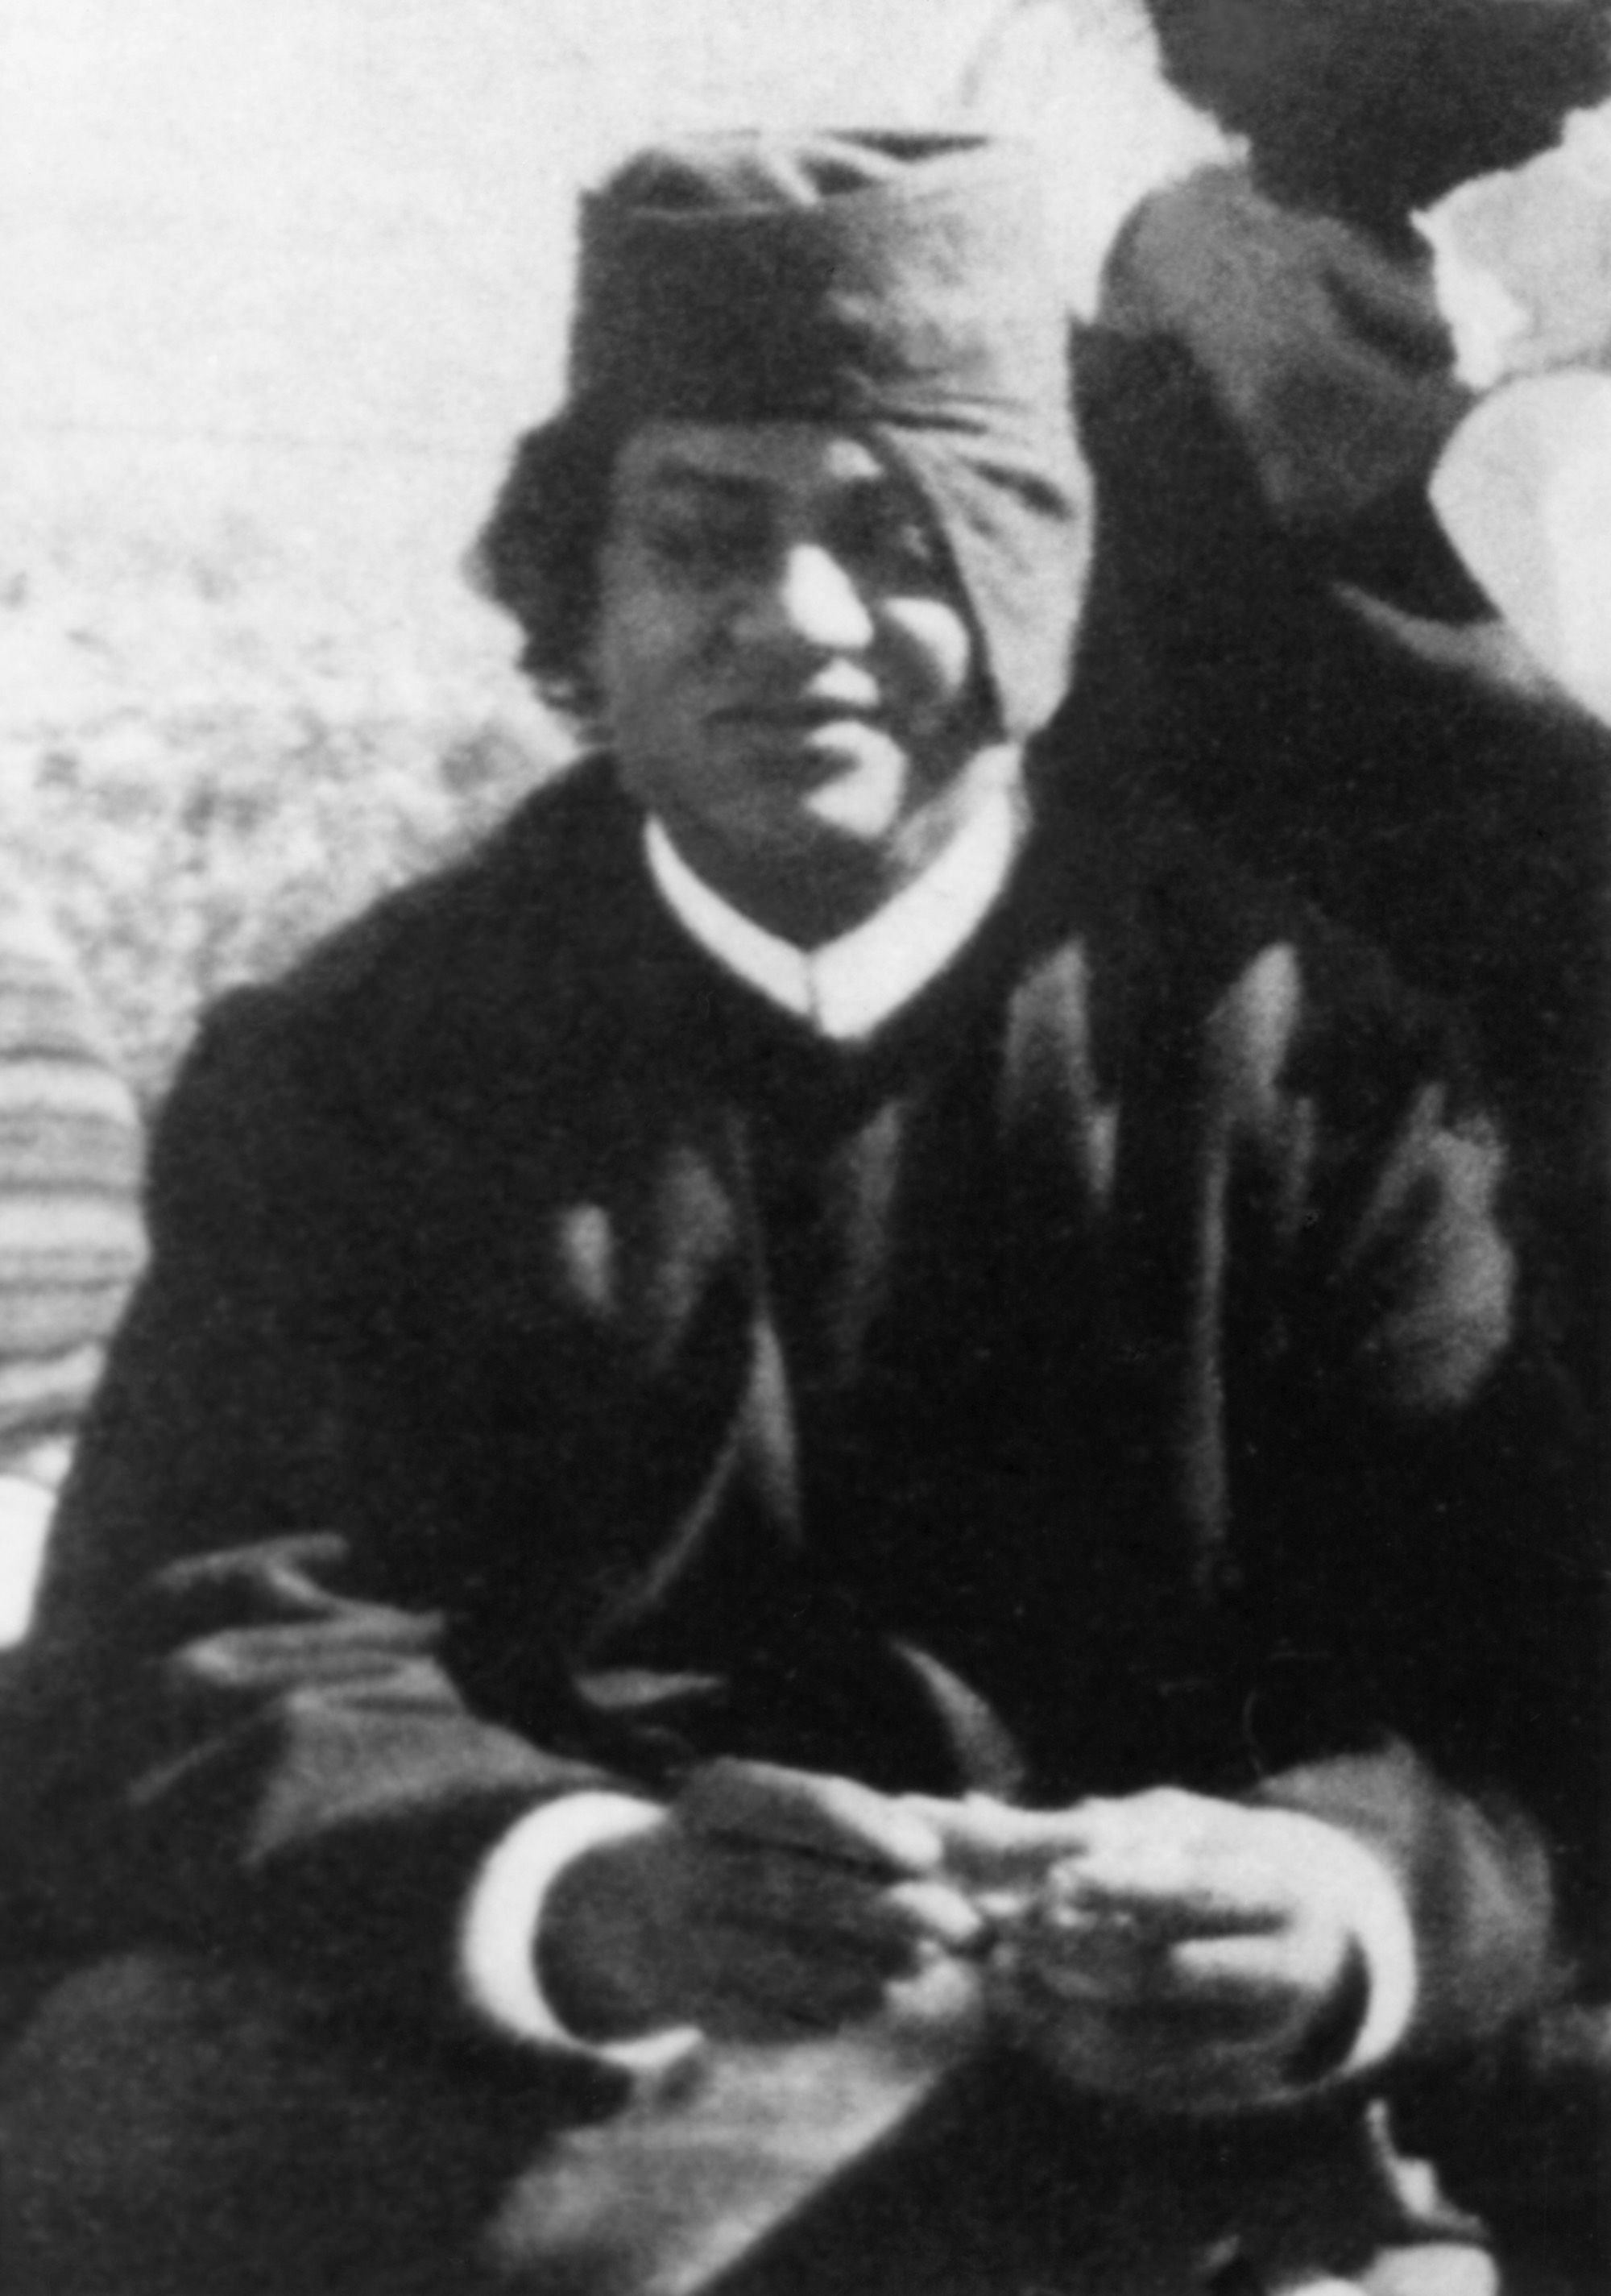 (#85) Crop of Swamiji in #86